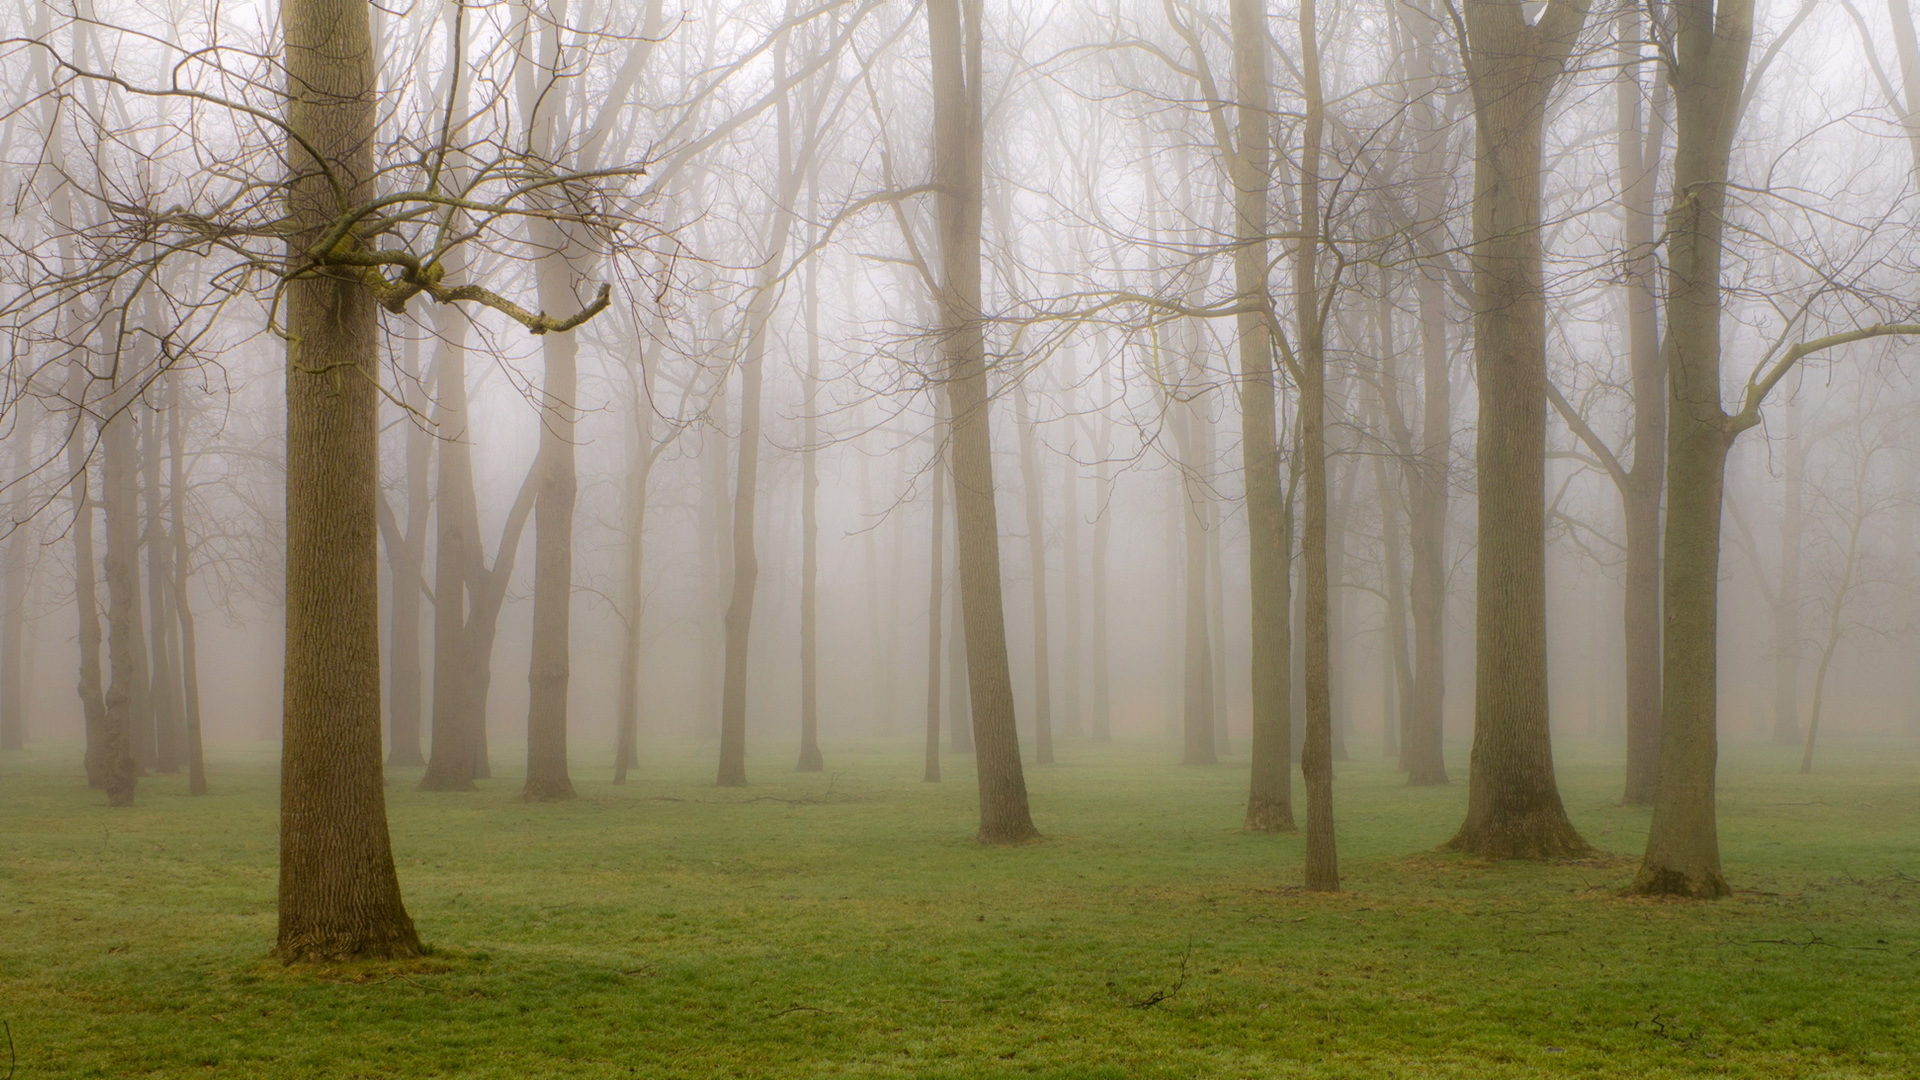 Forest Fog Wallpaper for iPhone